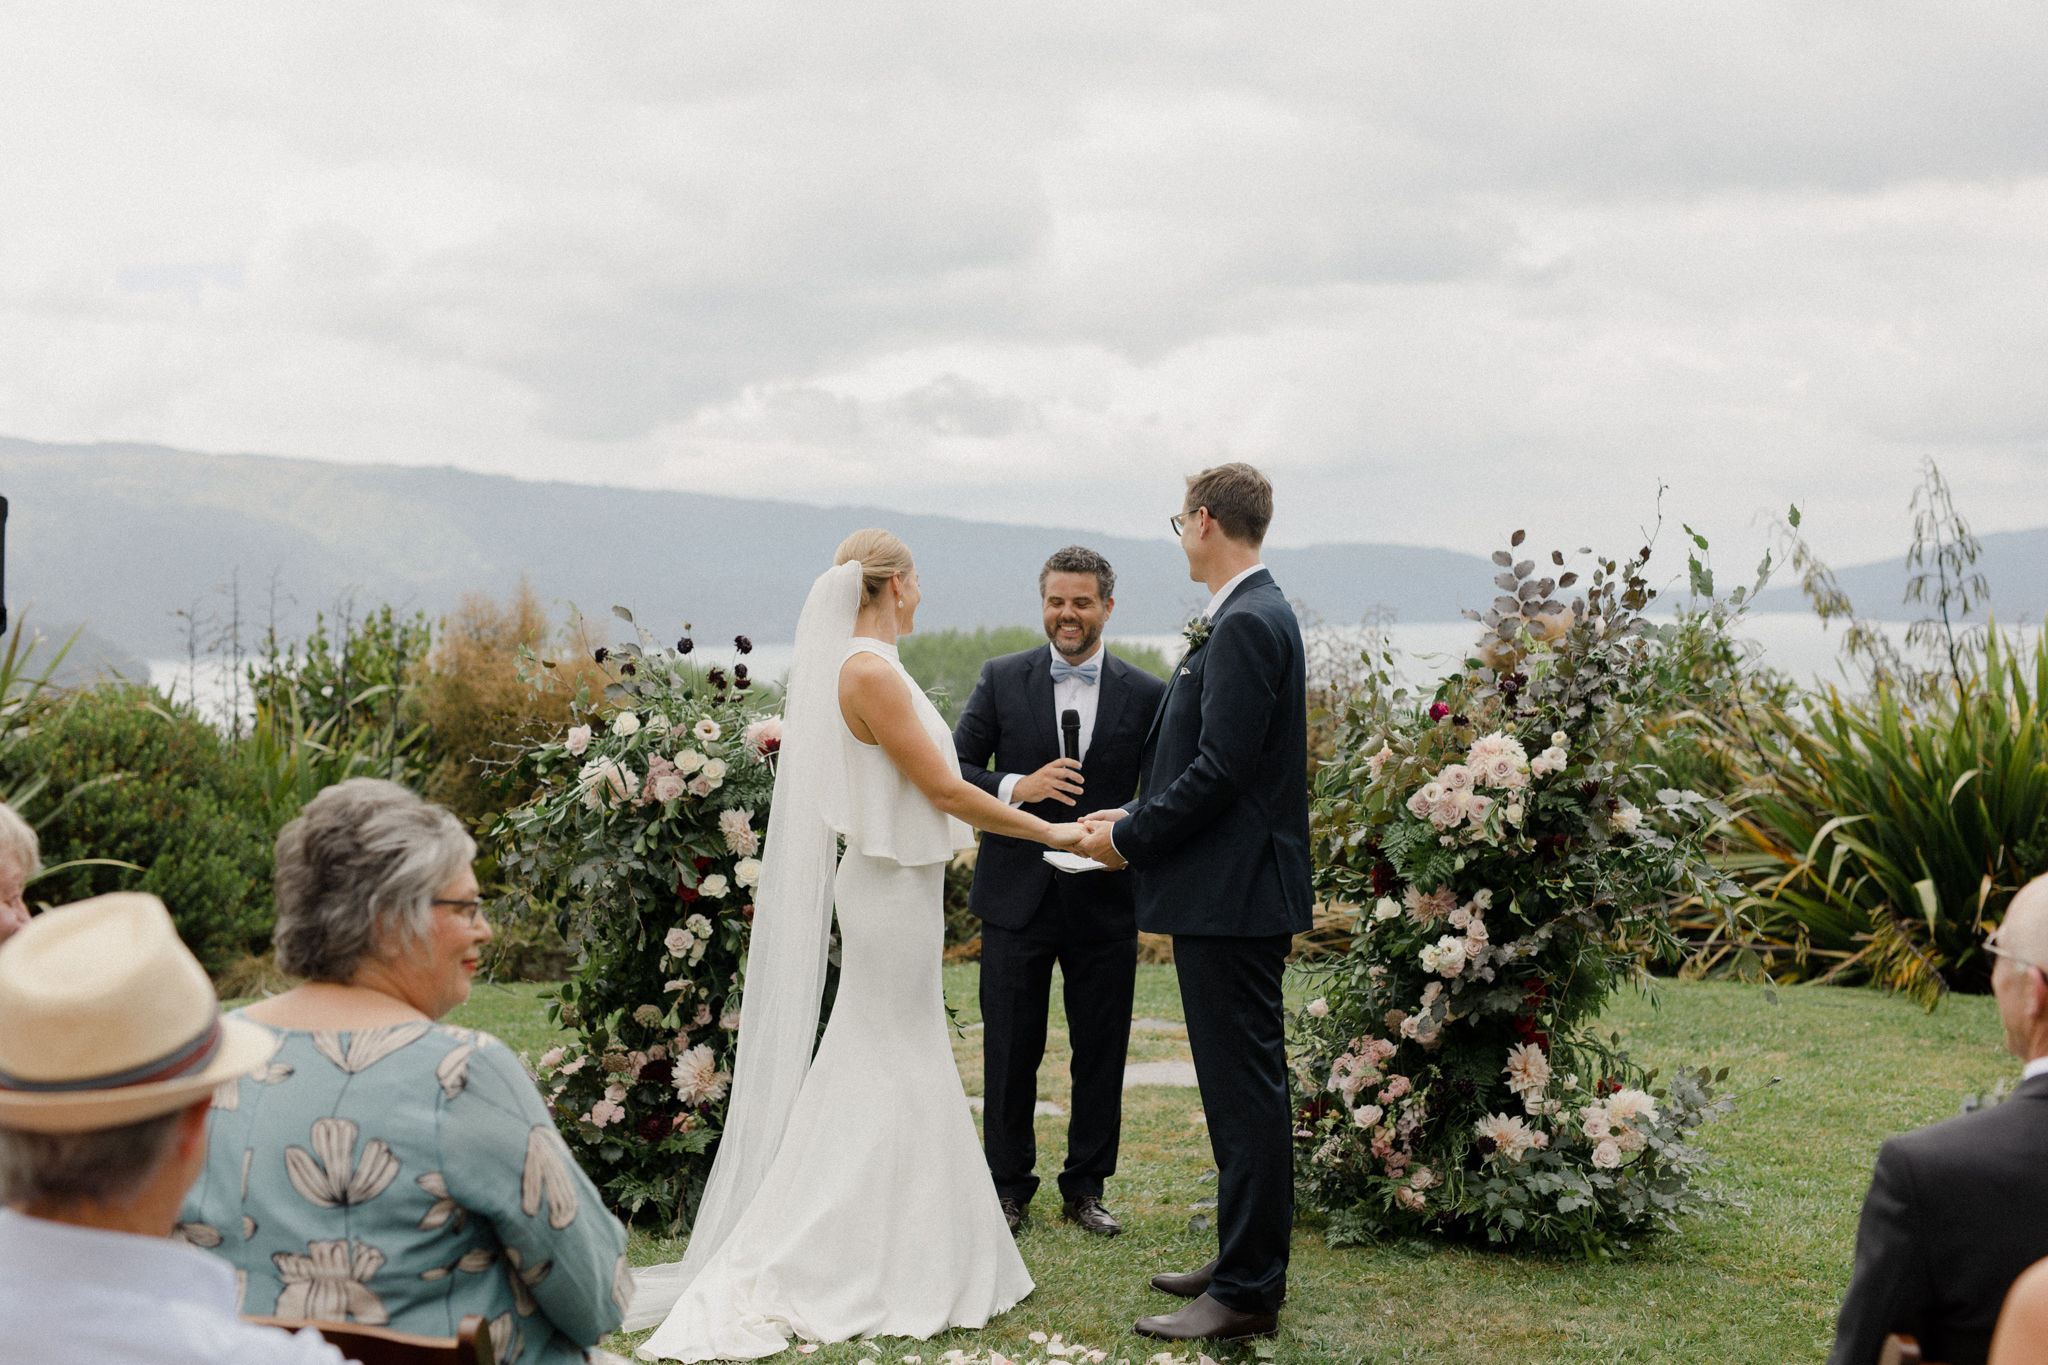 On My Hand wedding flowers - real wedding portfolio - Katy and Mike - outdoor ceremony with floral arrangements